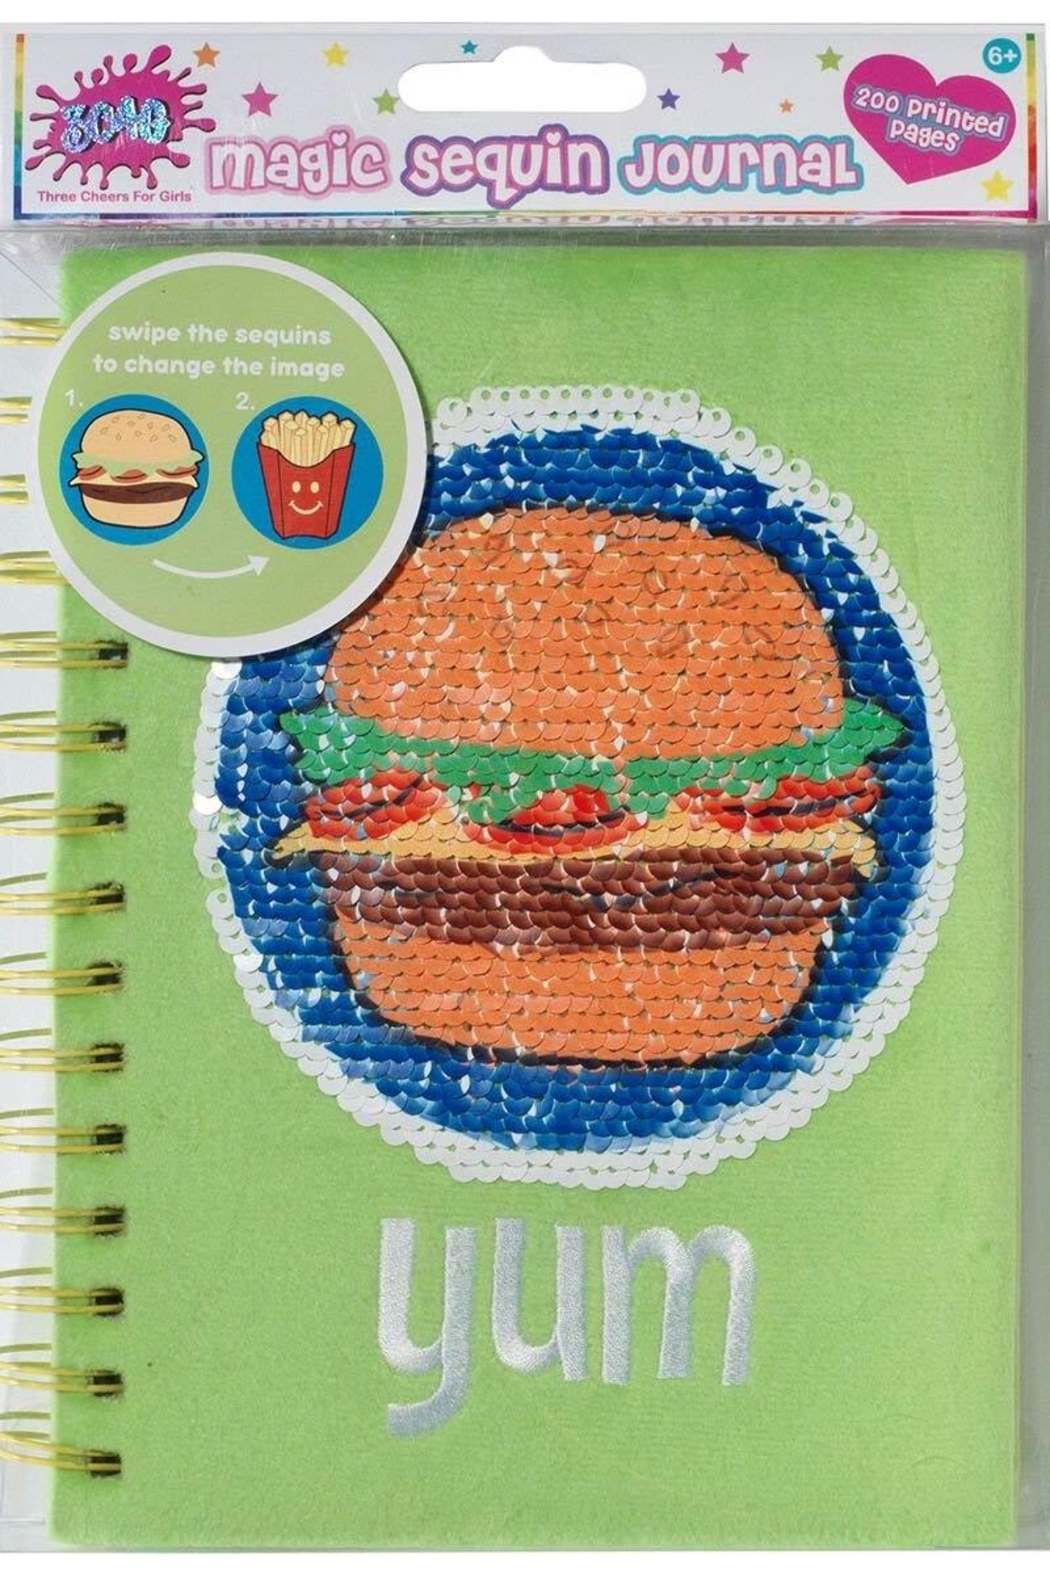 Three Cheers For Girls Magic Sequin Journal-Burger - Main Image